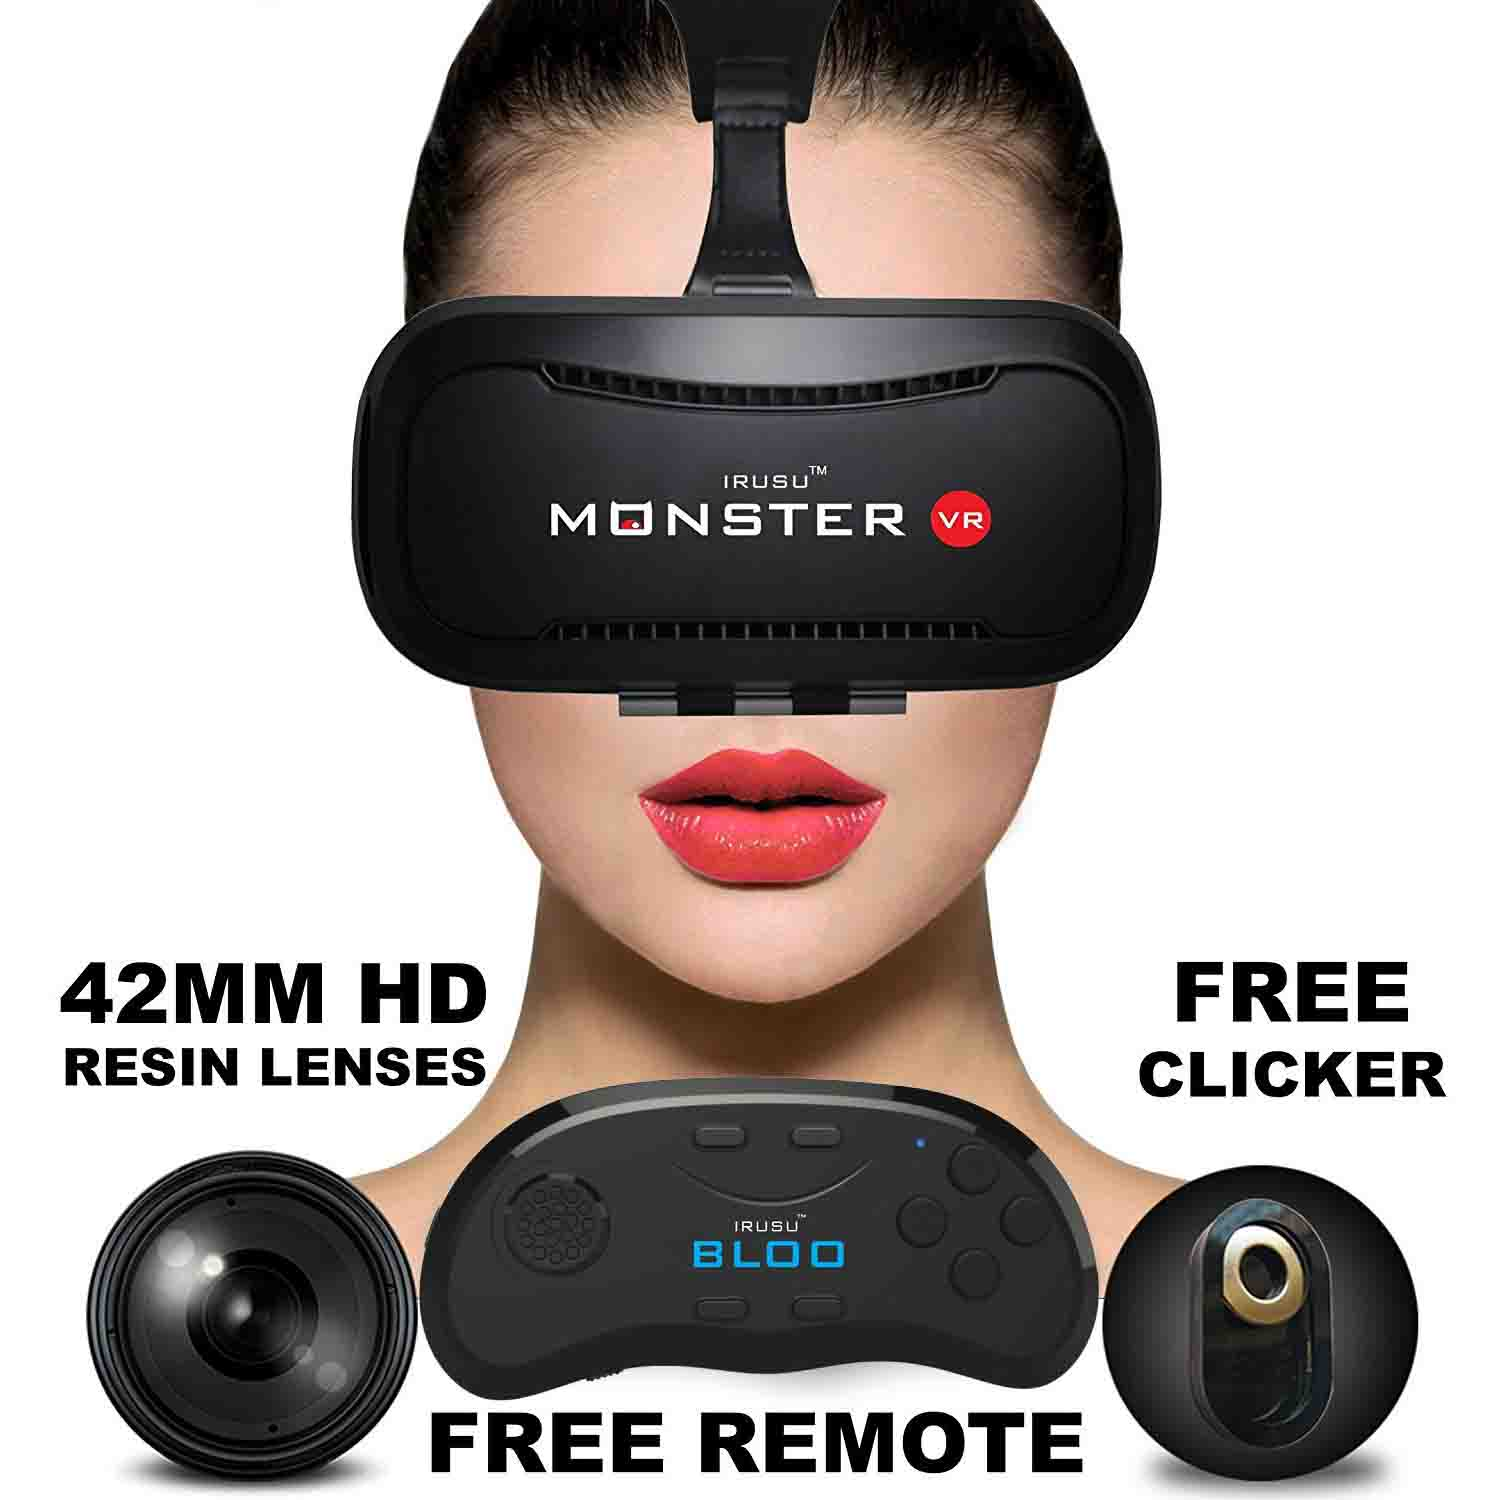 VR headset india ,Virtual Reality headsets india , Google Cardboard india,VR Box india, vr headsets in india , VR headset online india,vr glasses